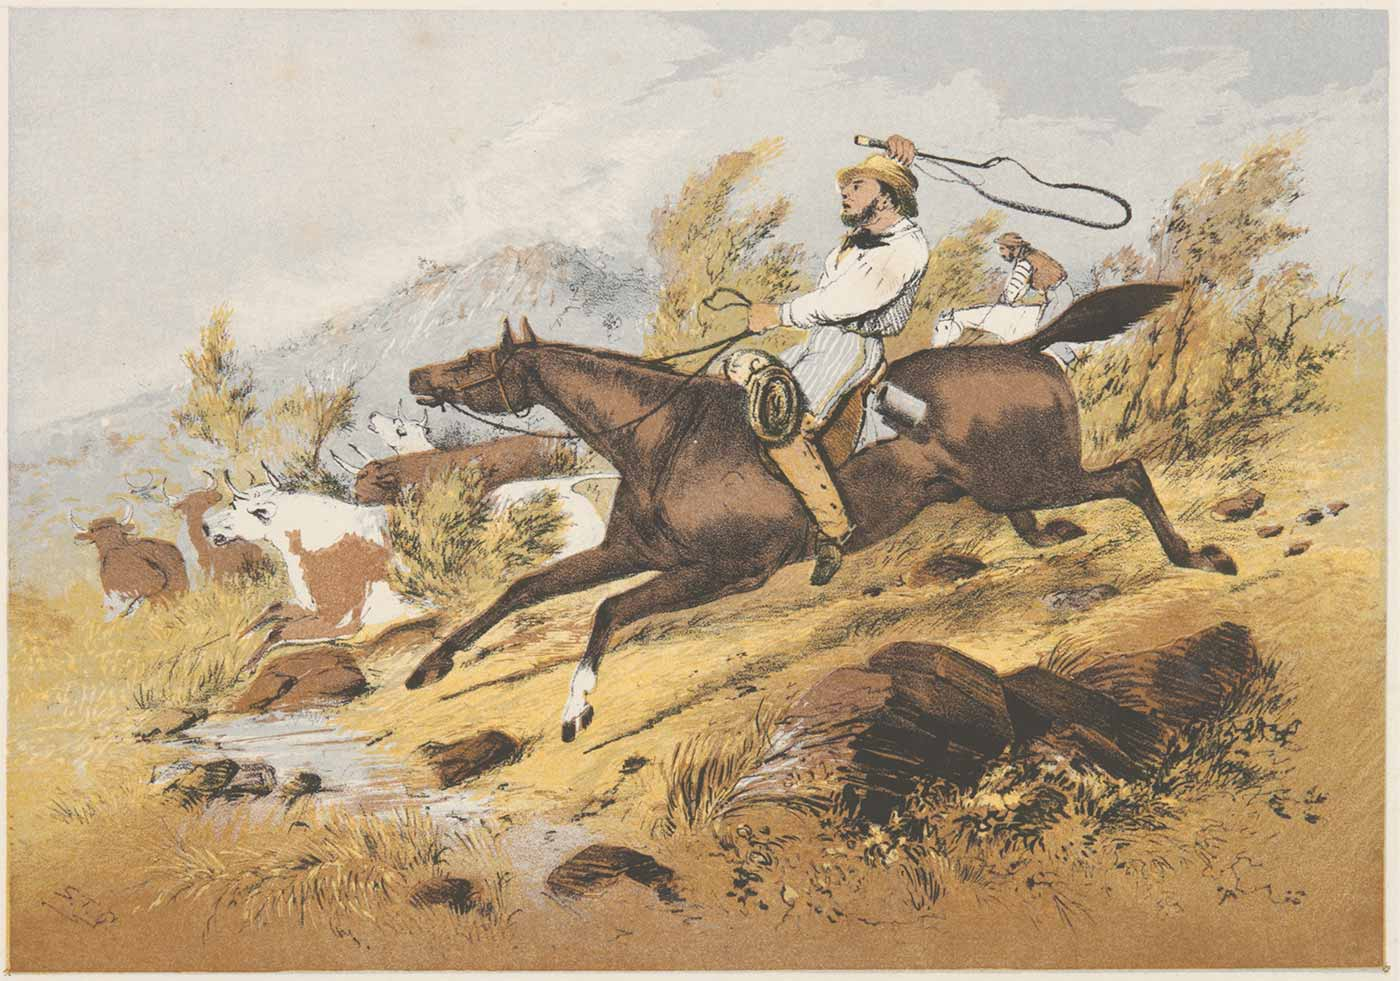 Watercolour painting of men on horses rounding up cattle through bushland. The man in the centre is wielding a whip and there is a sense of excitement. - click to view larger image